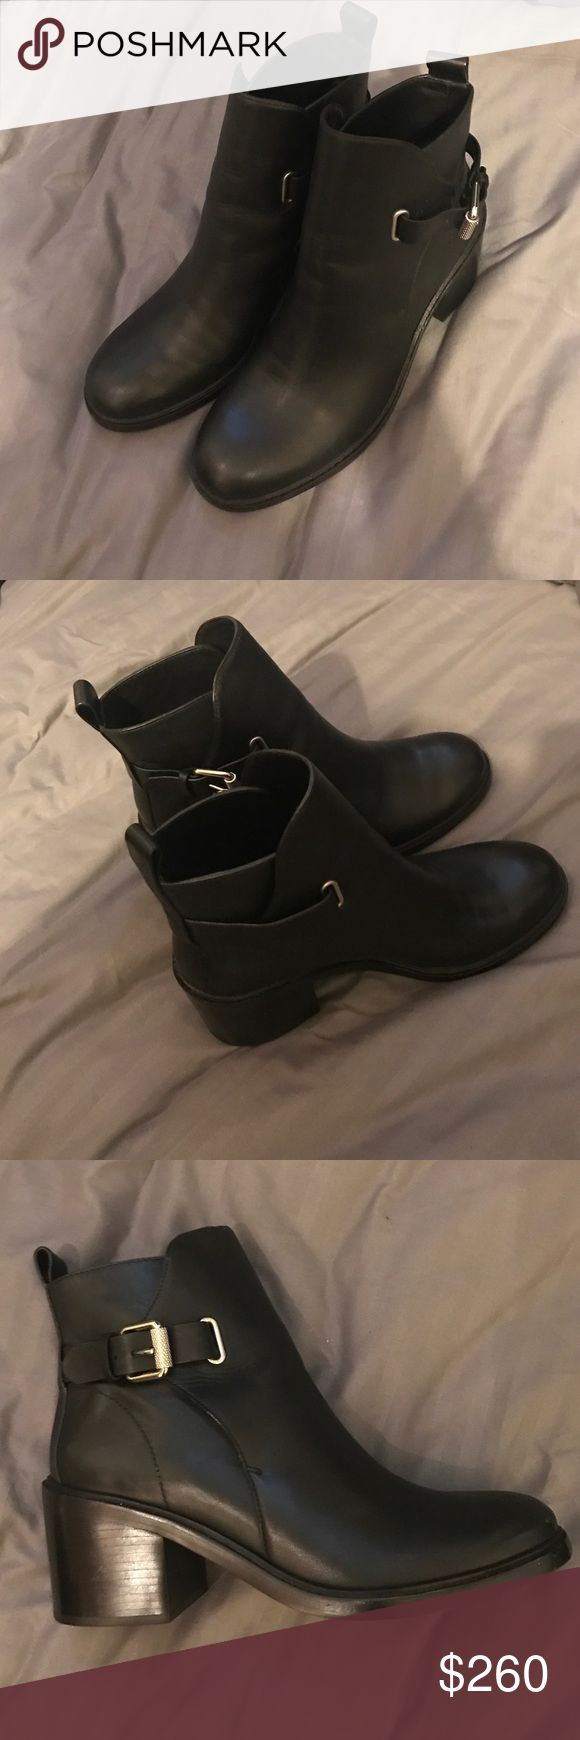 ALLSAINTS LEATHER BOOTS Black leather booties with a 3 inch heel. Lightly worn. All Saints Shoes Ankle Boots & Booties